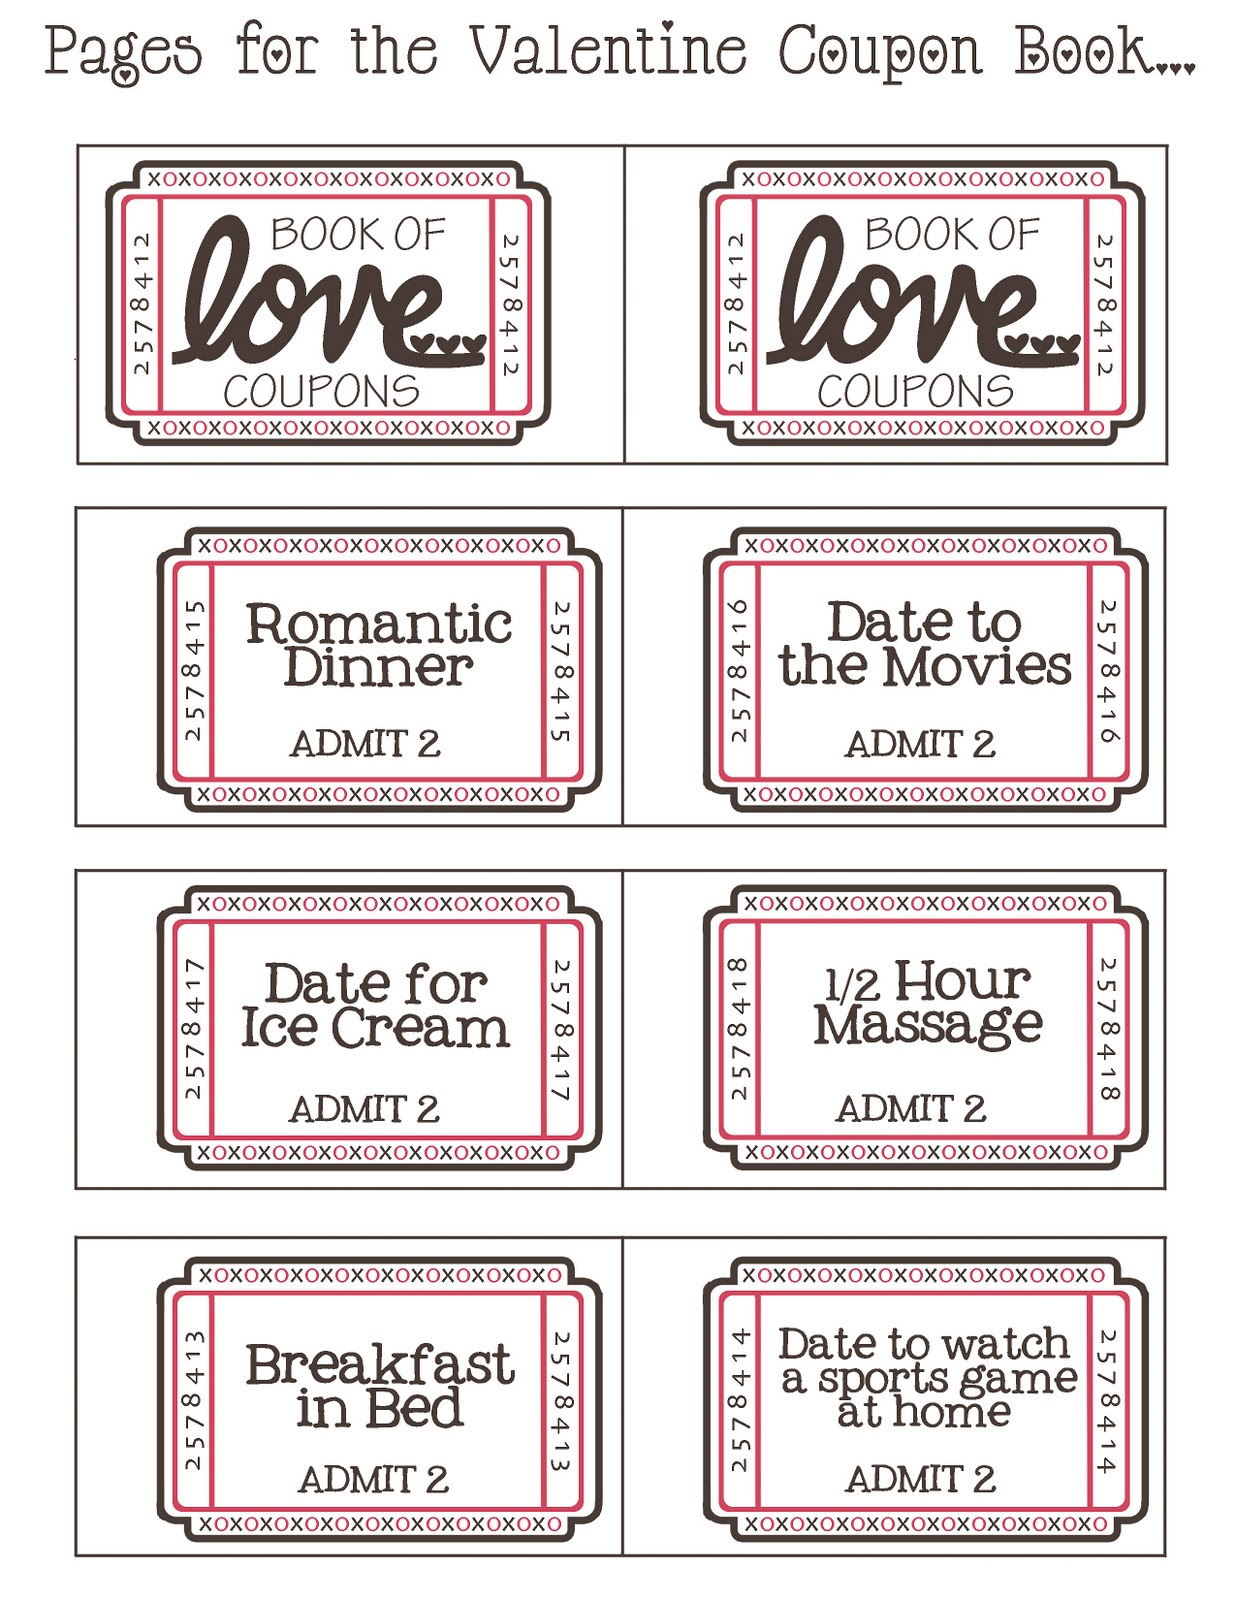 Homemade coupons for girlfriend